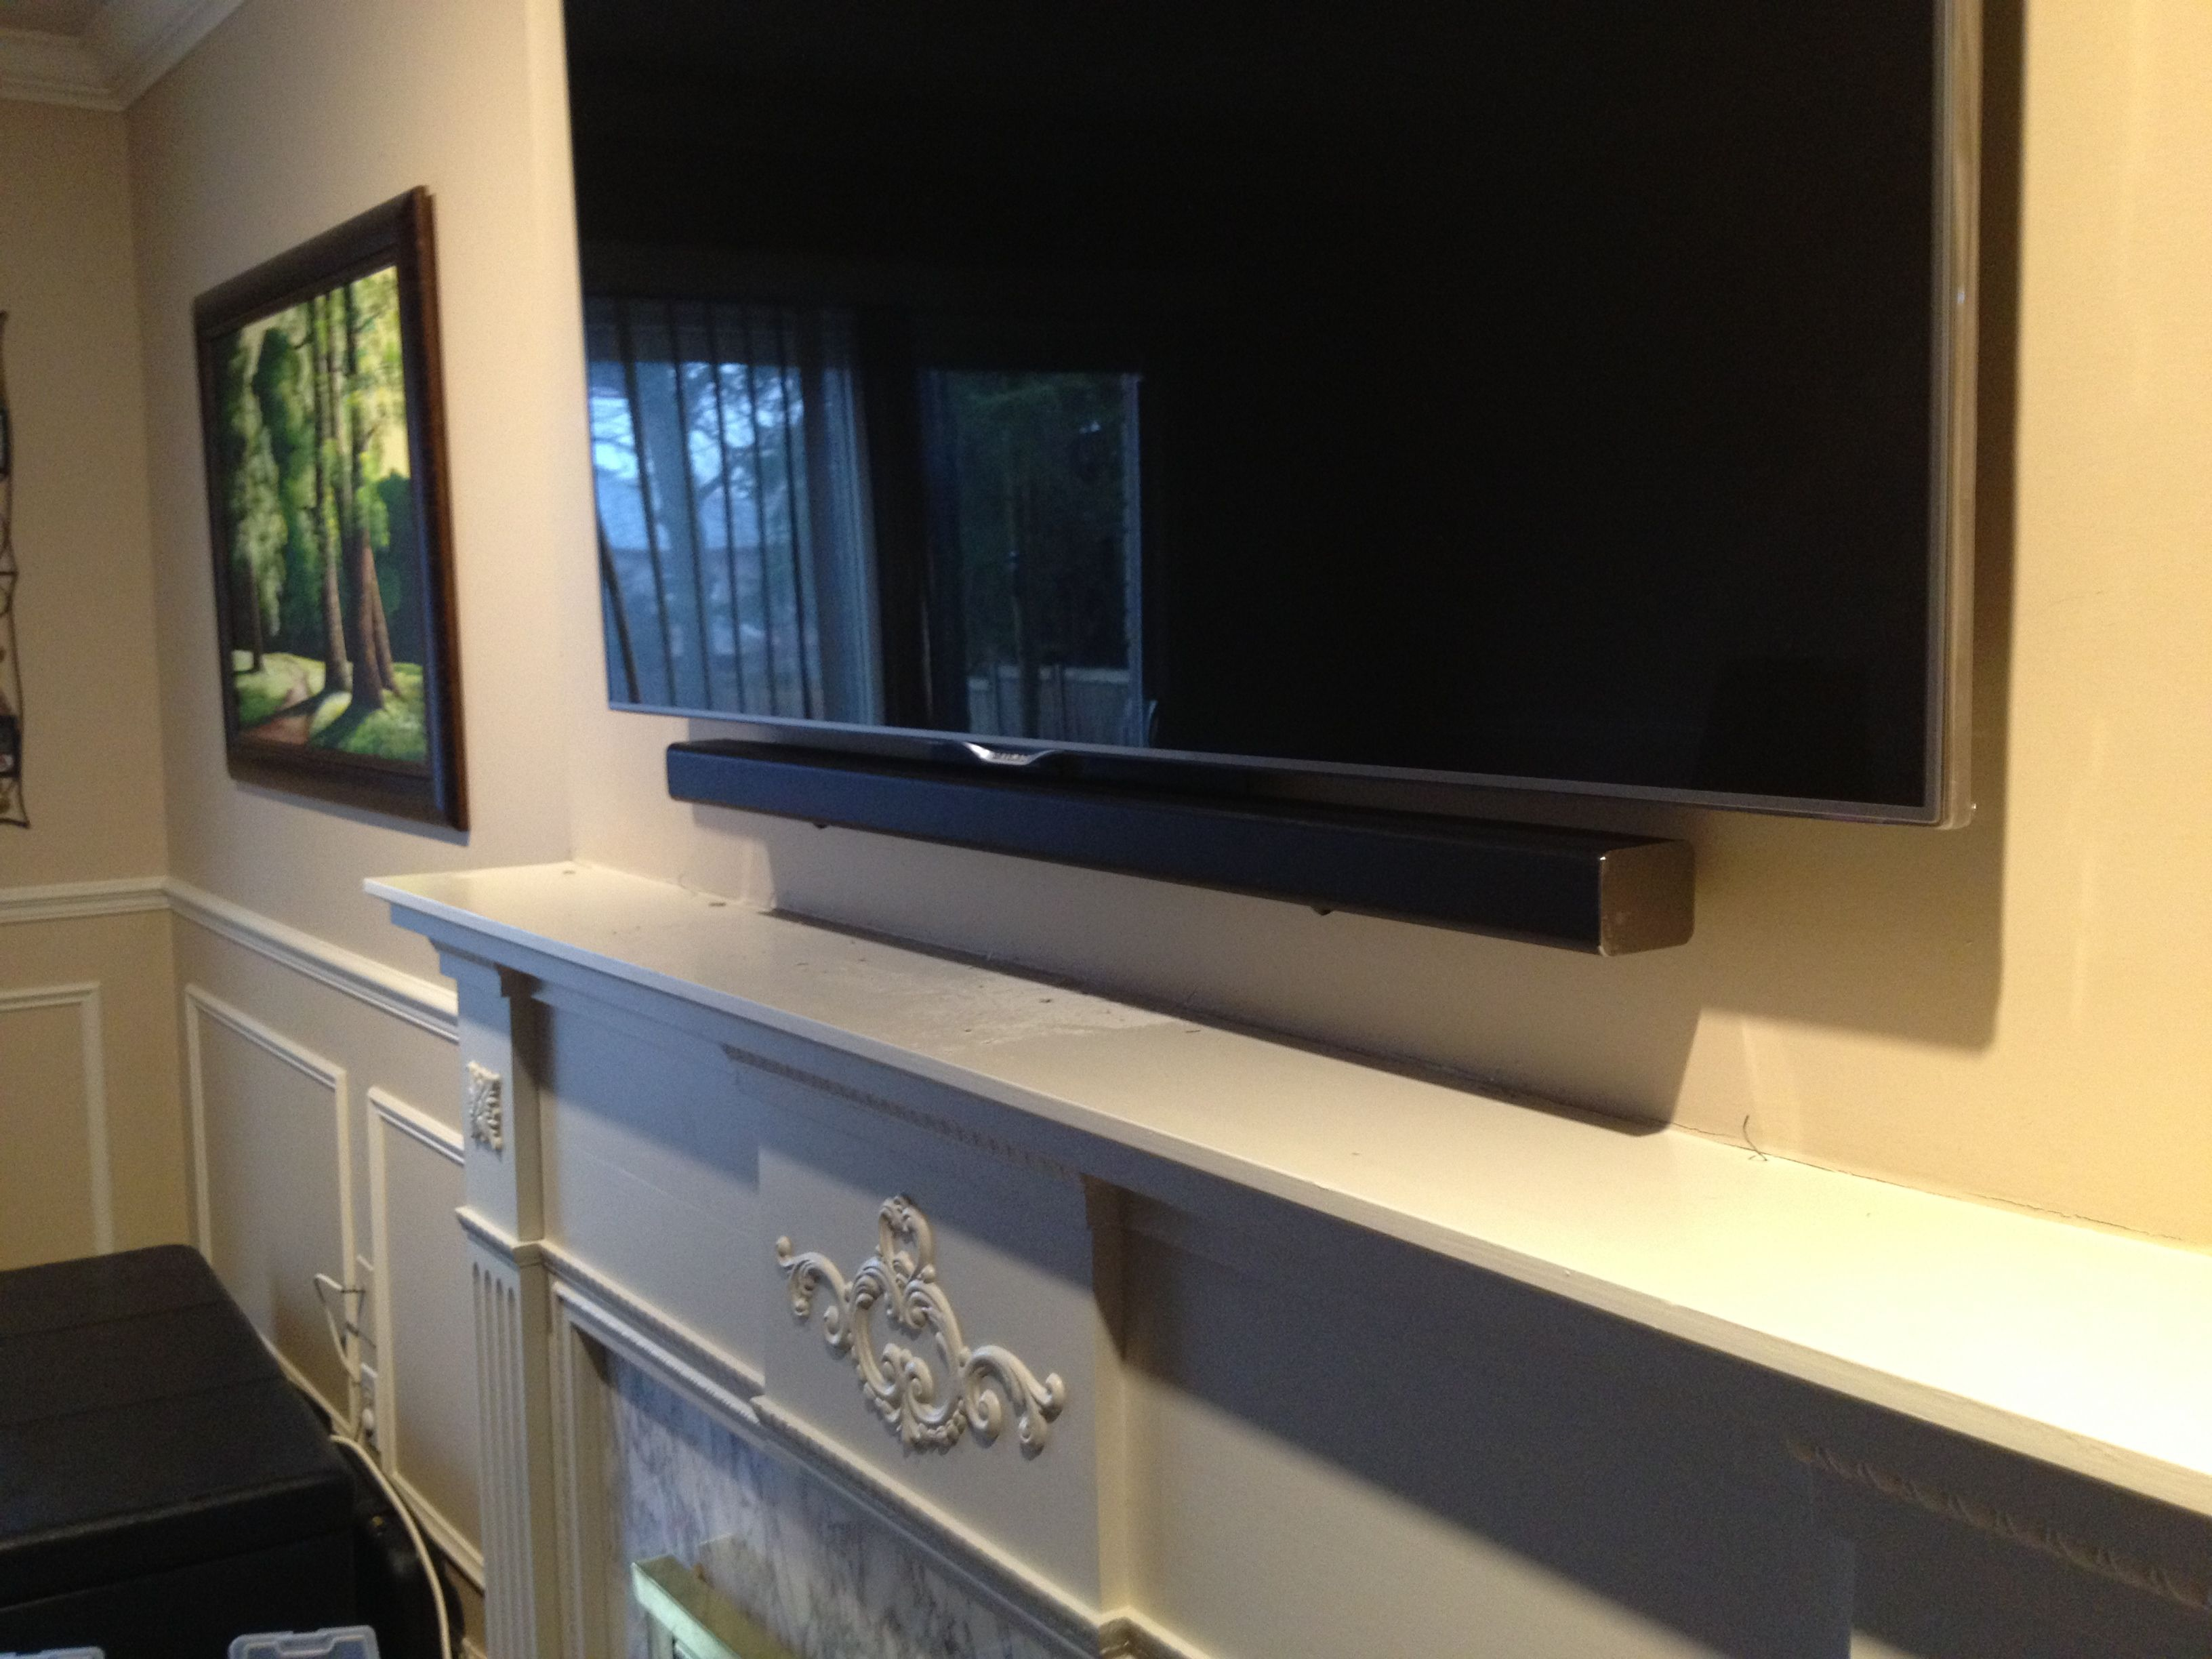 Samsung Sound Bar Installed Flush Against The Front Surface Of The